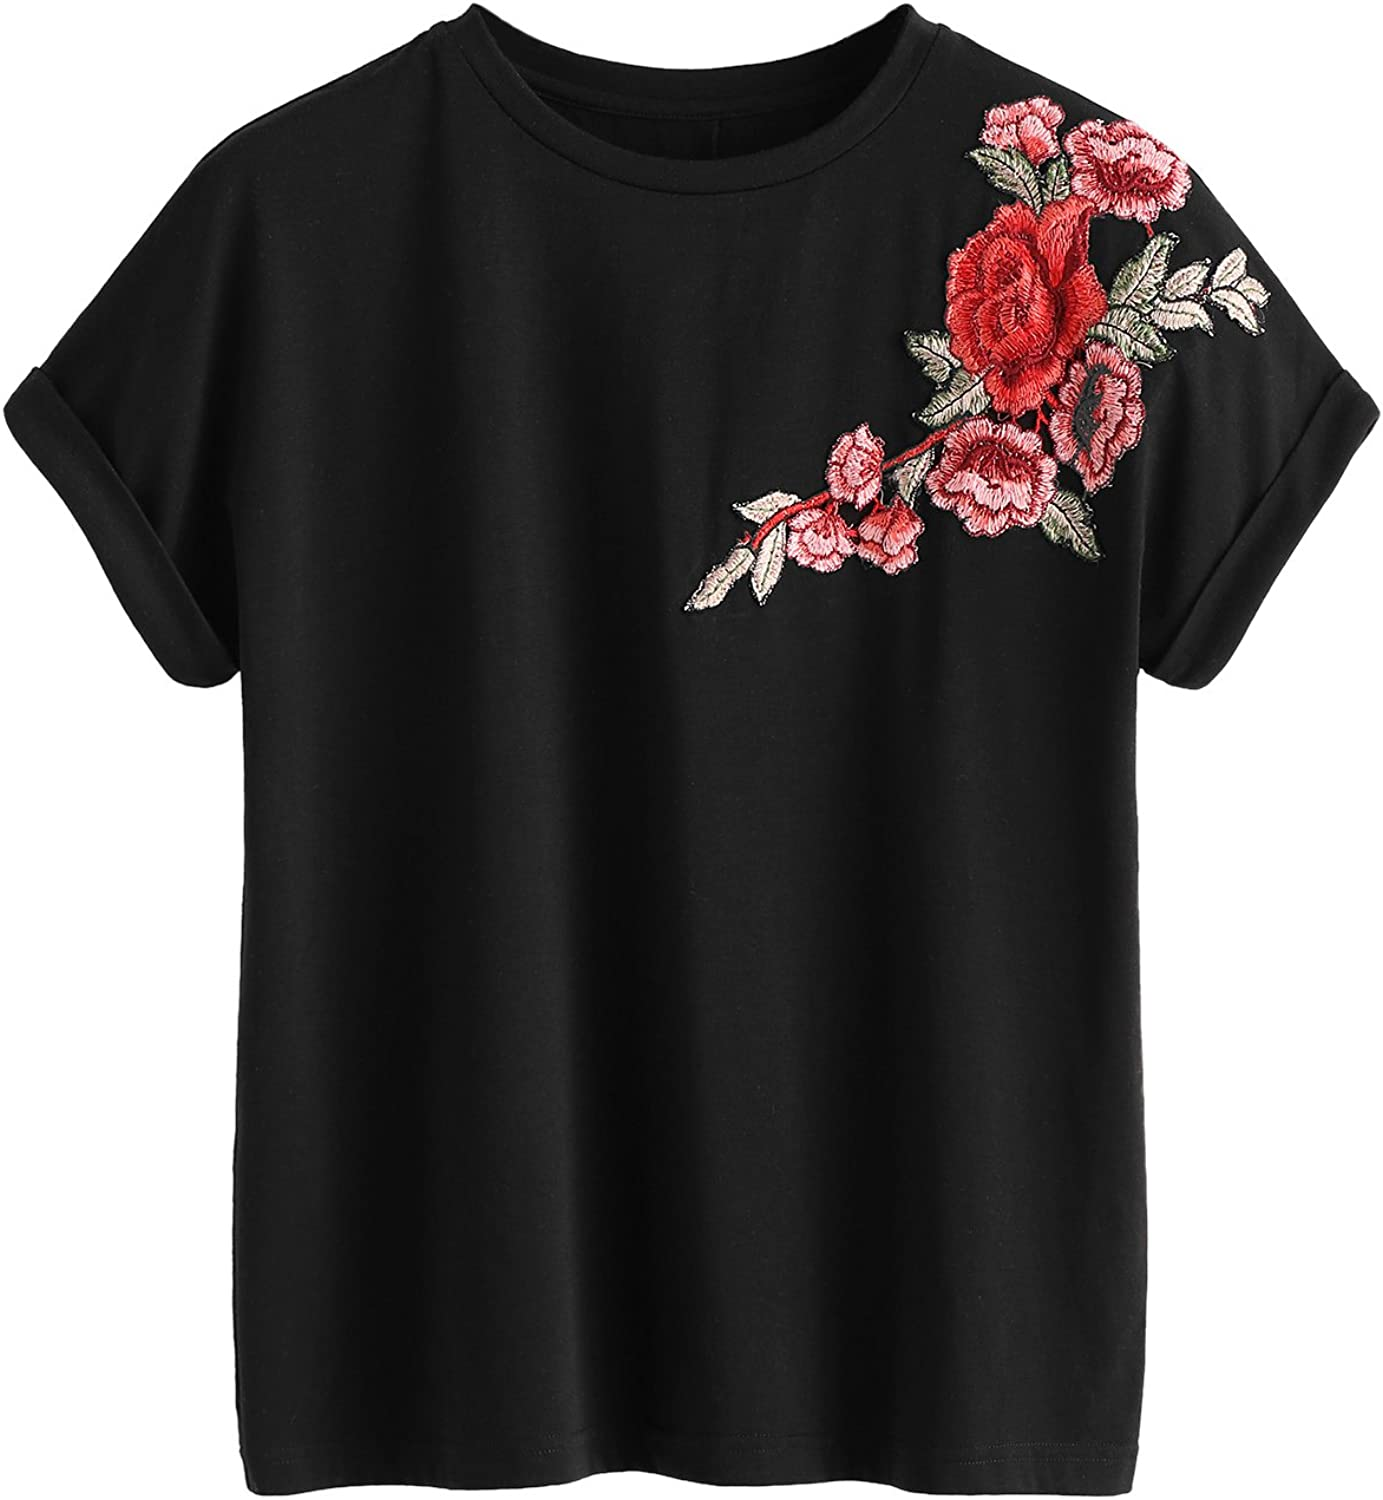 Romwe Women's Floral Embroidery Cuffed Short Sleeve Casual Tees T-Shirt Tops